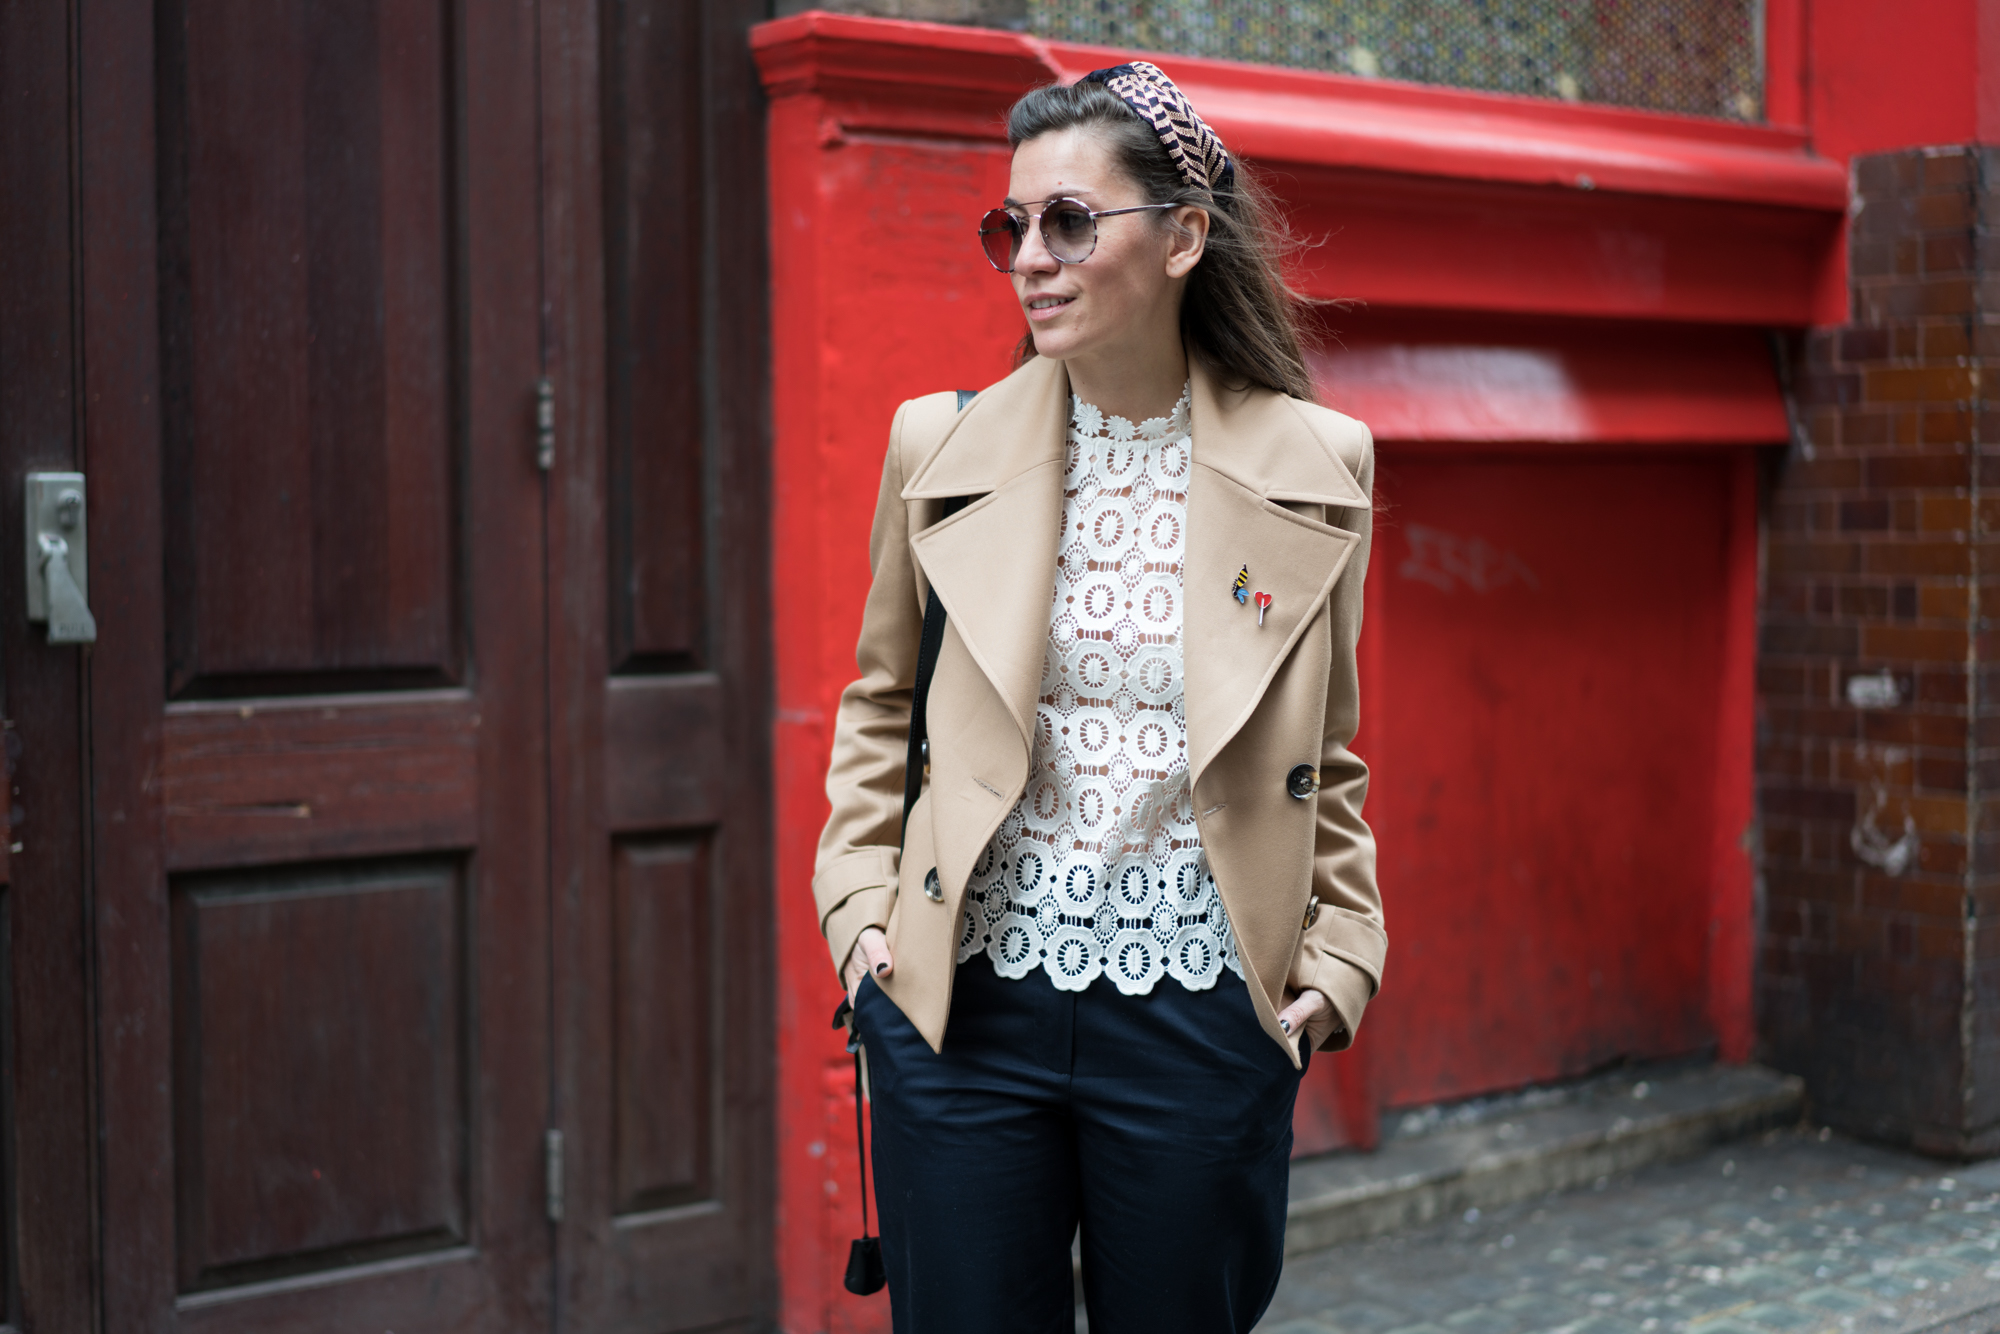 lfw, street style, london fashion week, sunglass hut, style, fashion, turkish style blogger, billur saatci, off ne giysem, academia, fendi, mybestfriends, aslı filinta, opening ceremony, self-portrait,